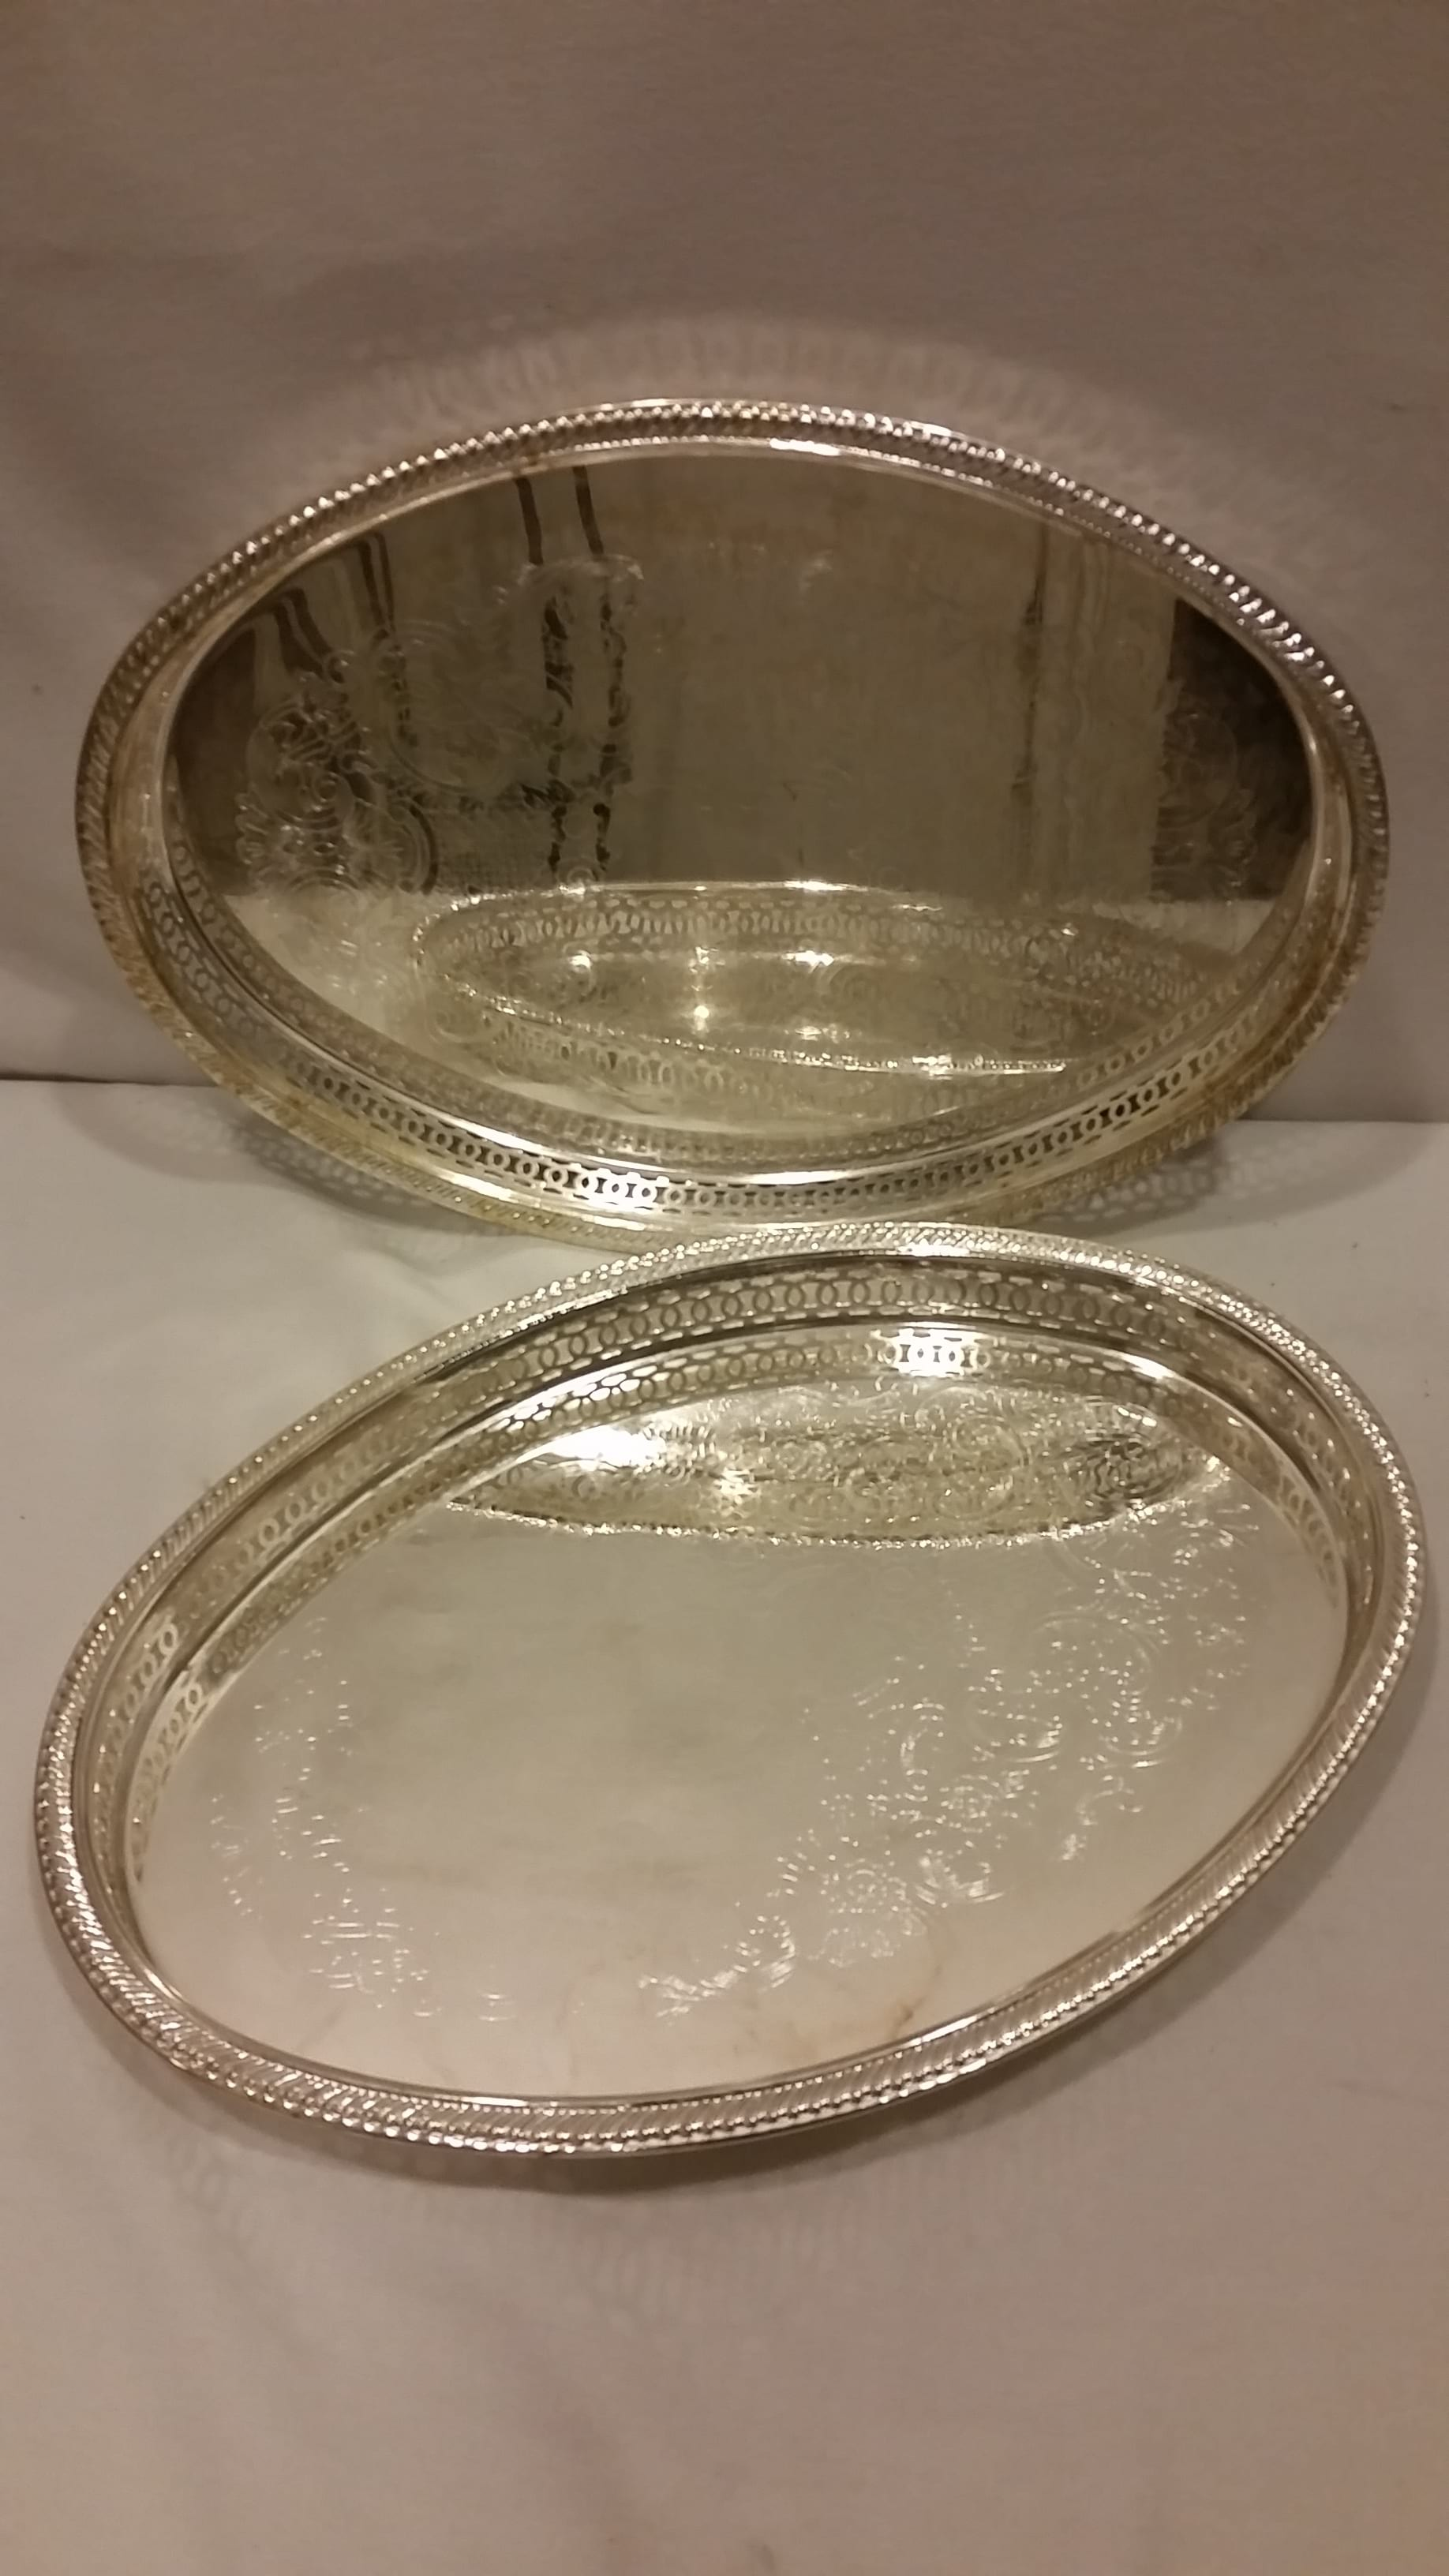 Tray - Silver Oval Slit Edge